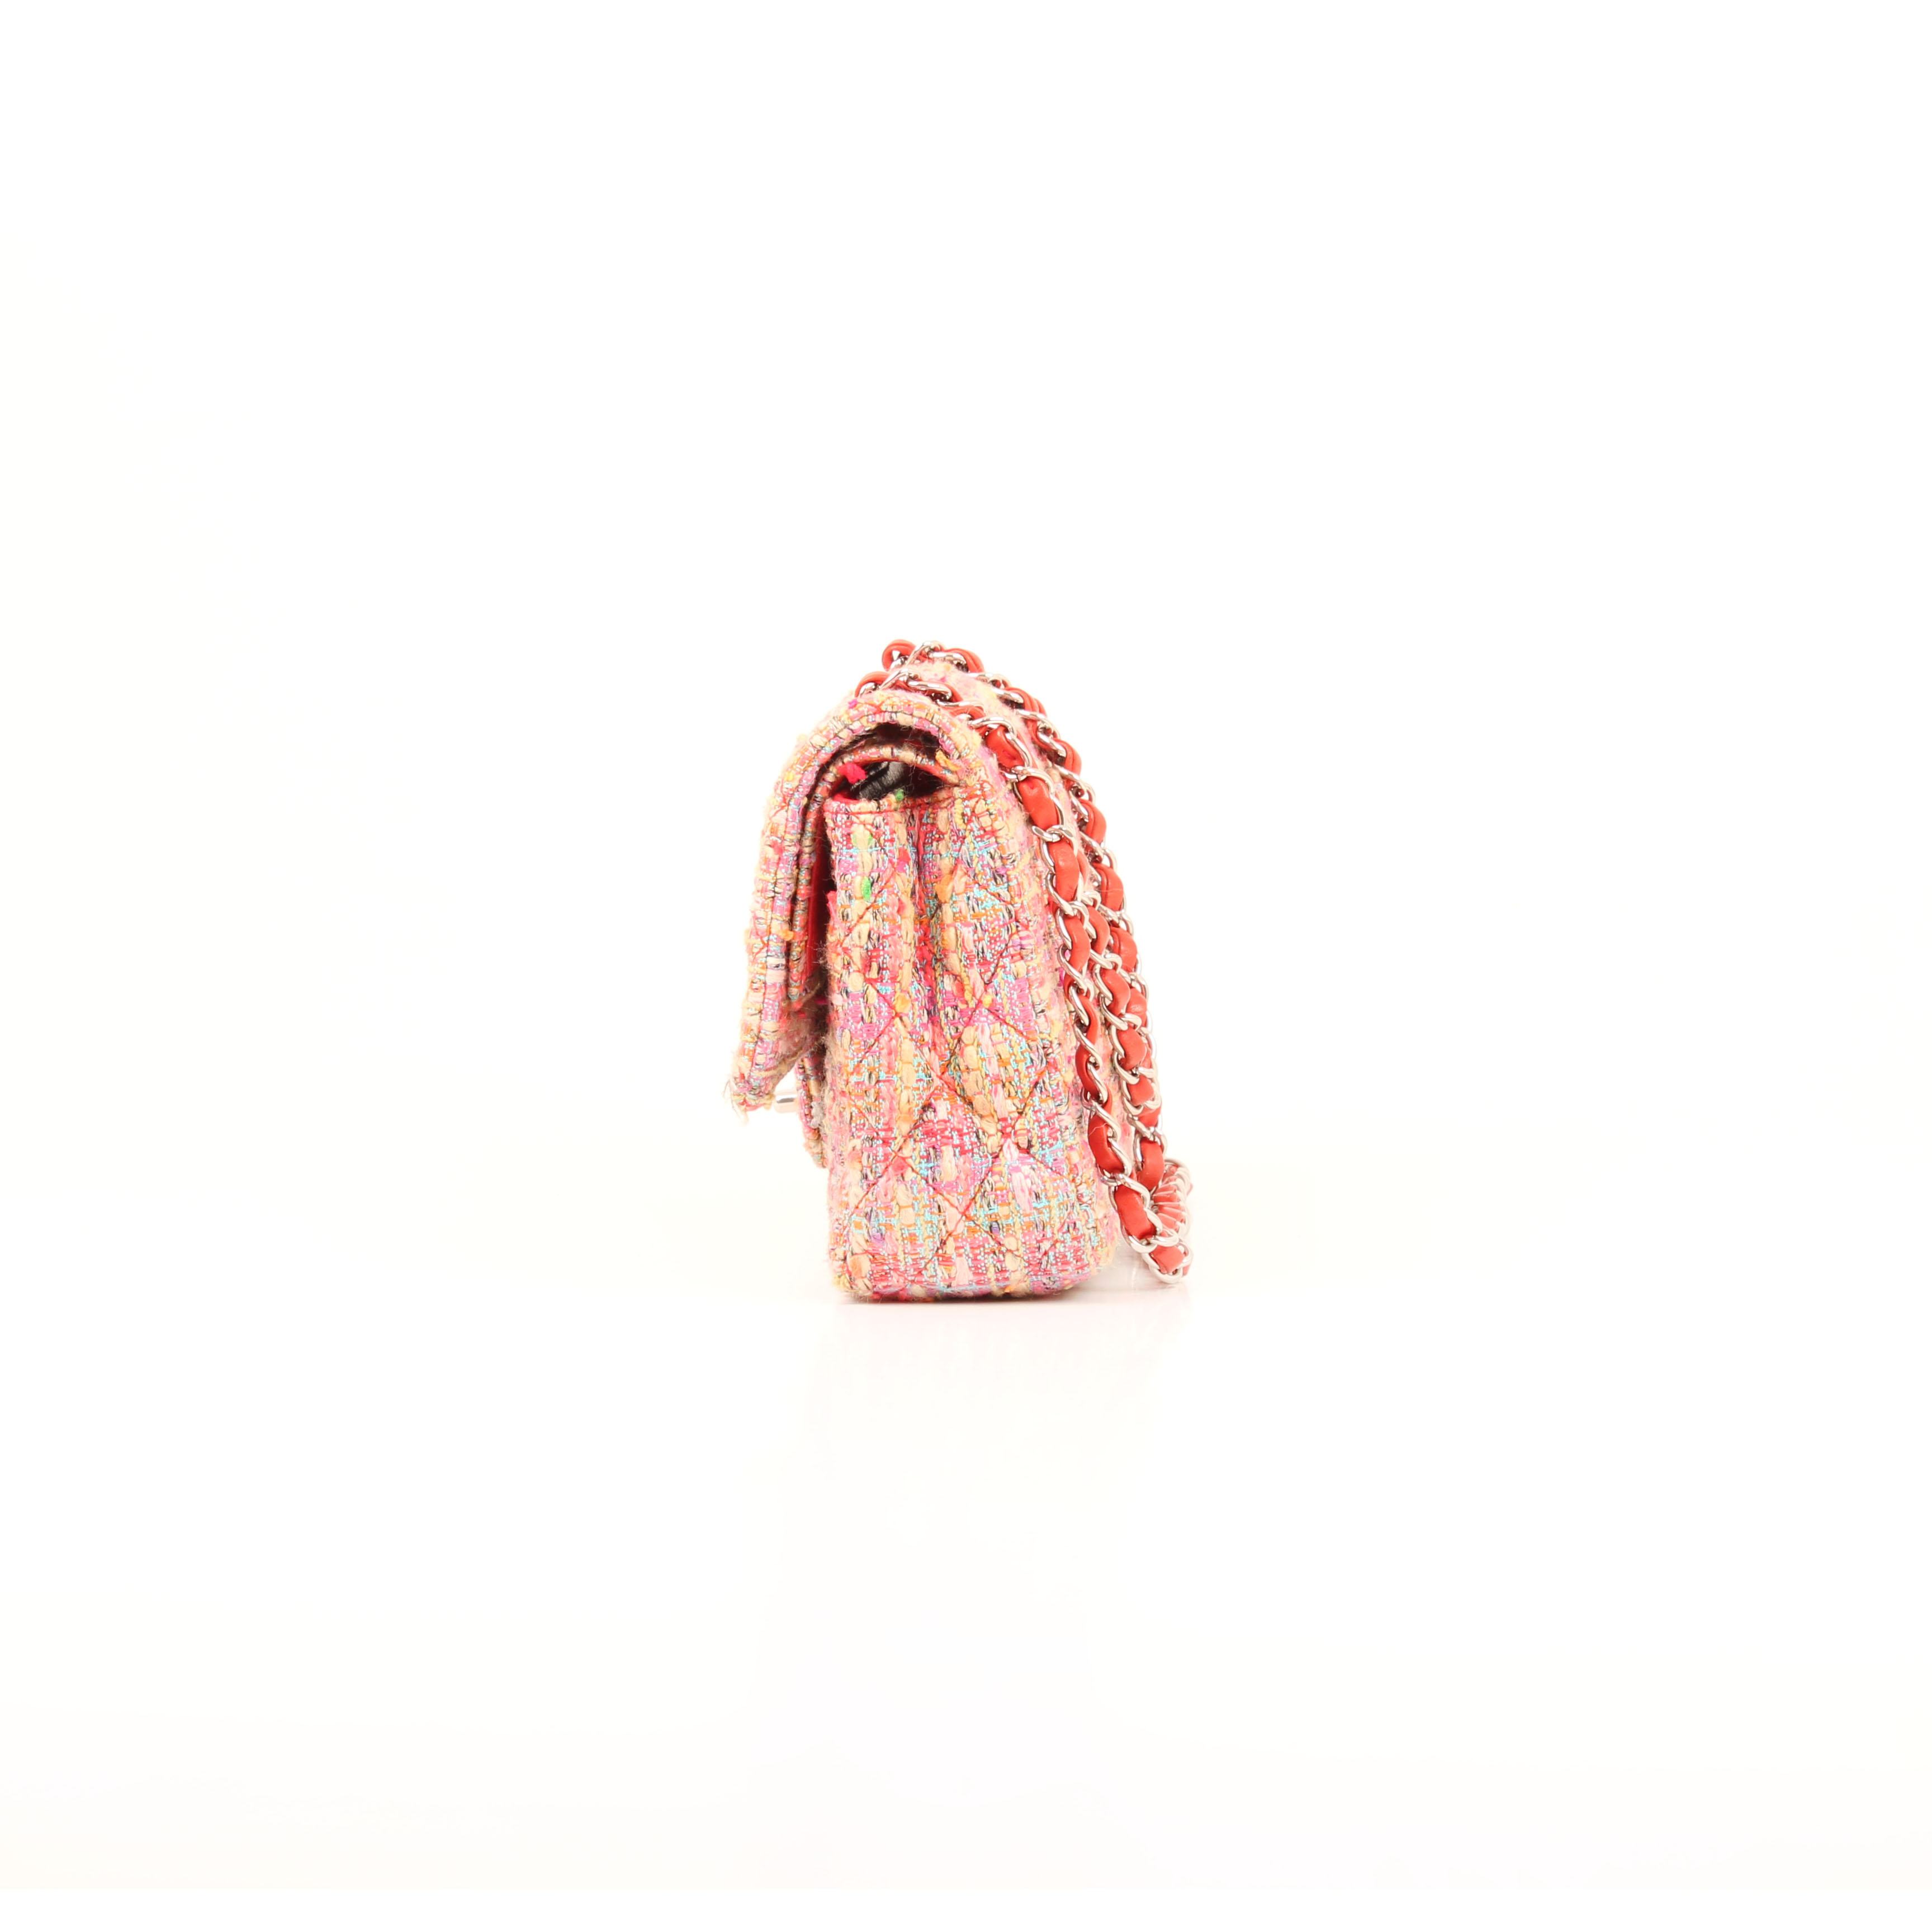 Side image from chanel timeless tweed pink multicolor neon double flap bag